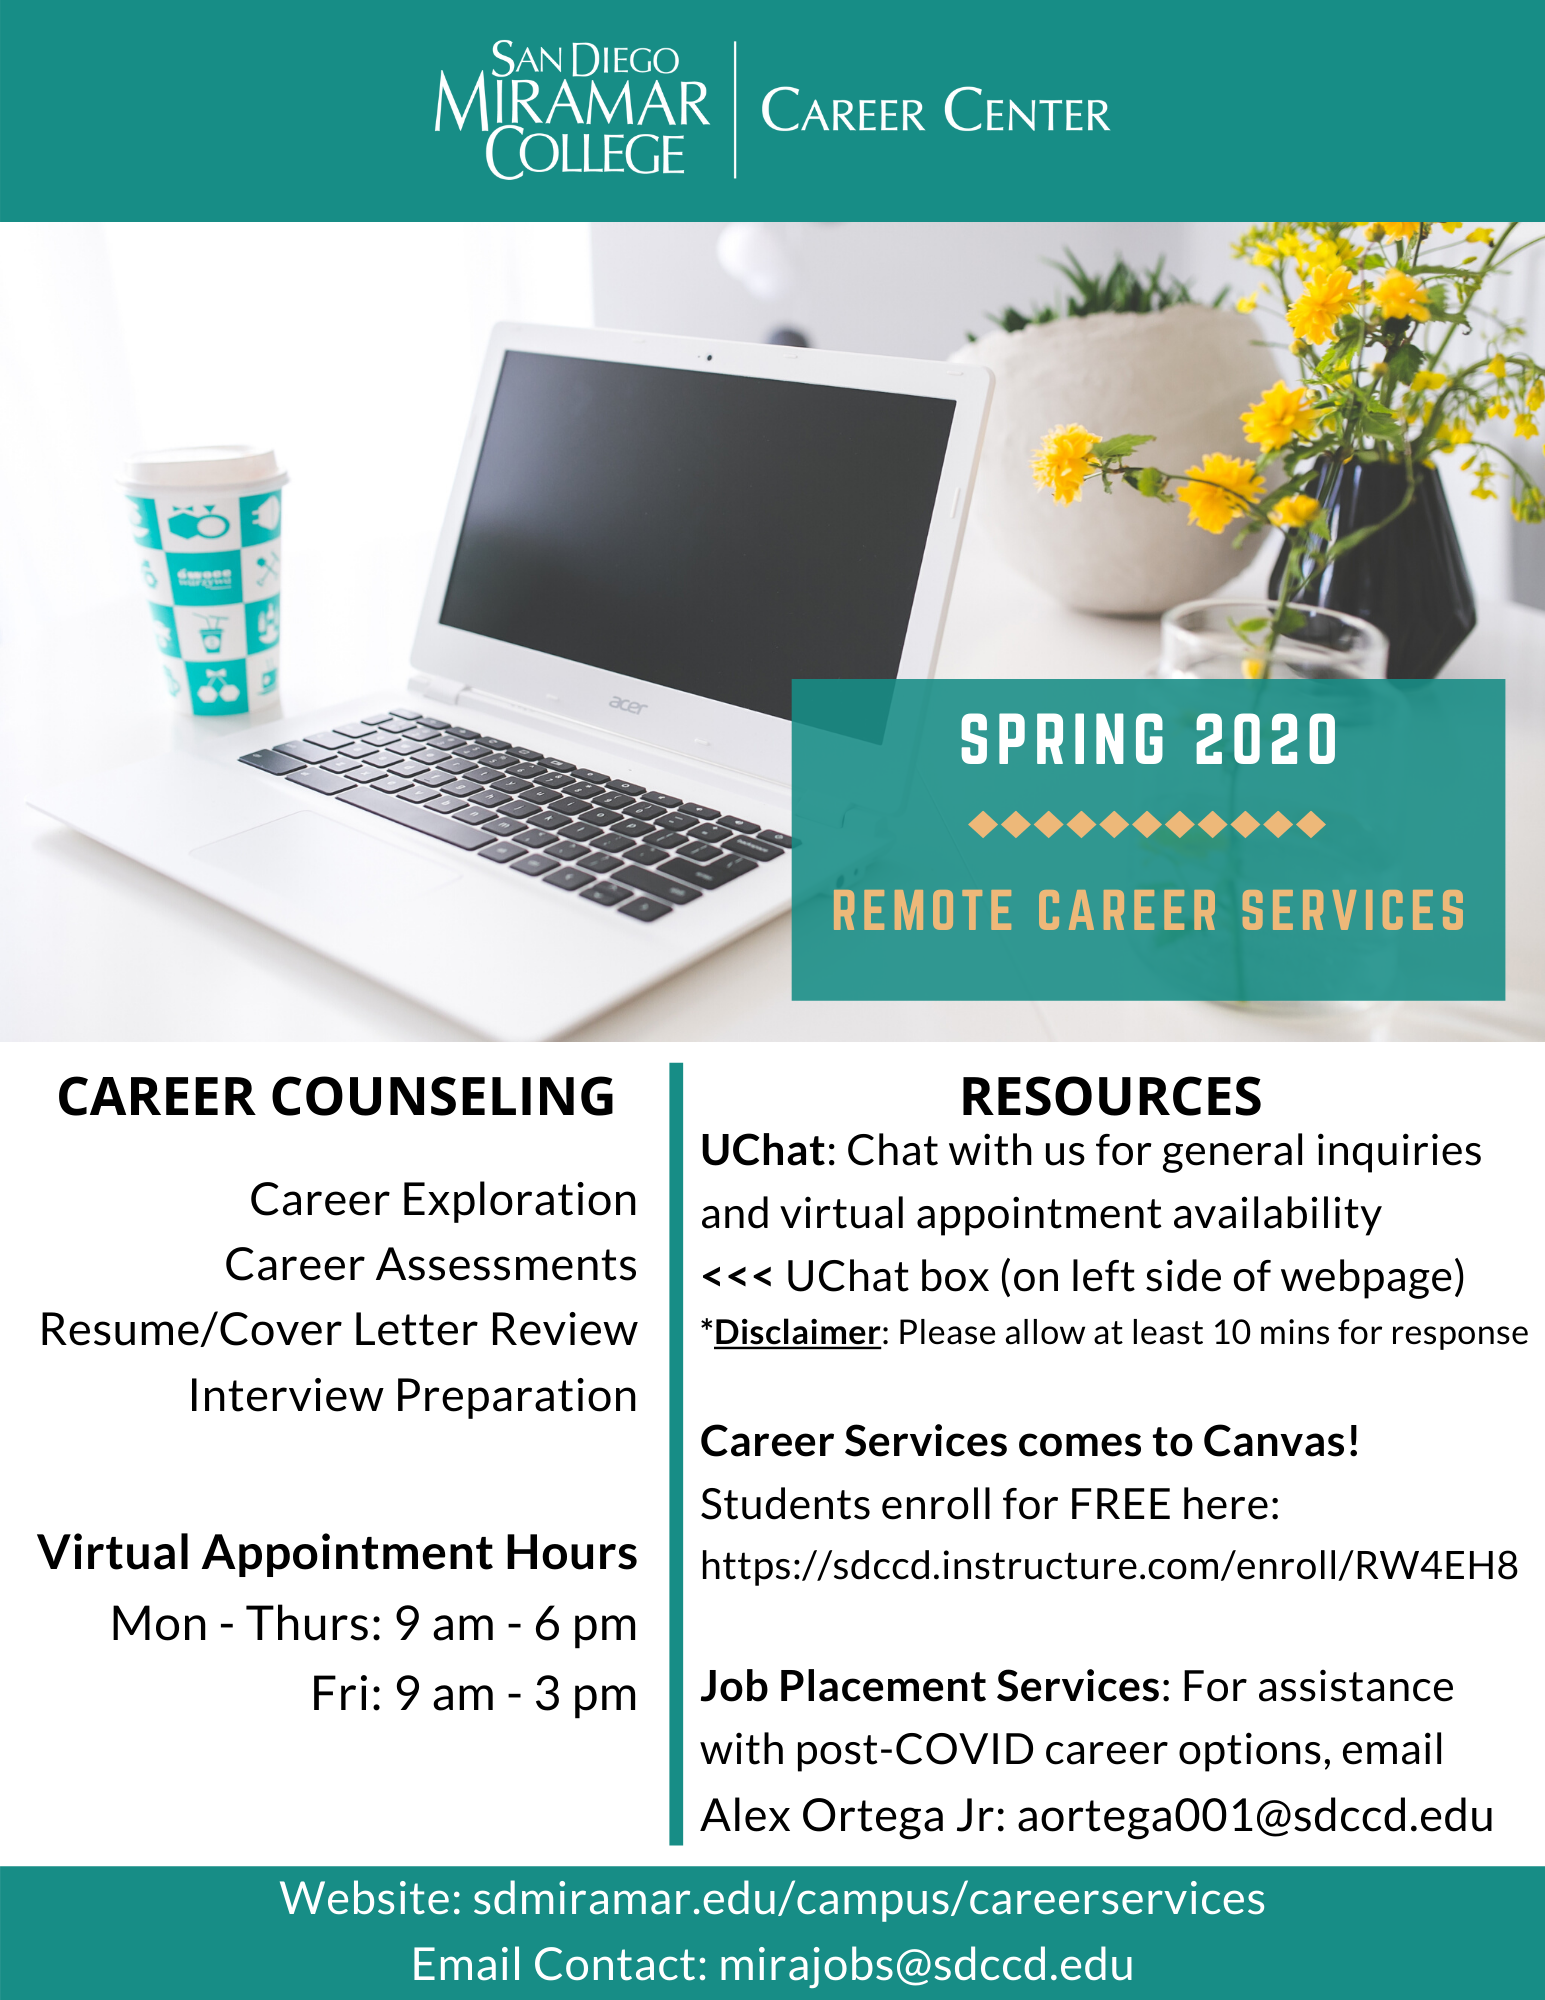 Remote Career Services flyer. For remote career resources, please visit our Canvas shell at: https://sdccd.instructure.com/enroll/RW4EH8